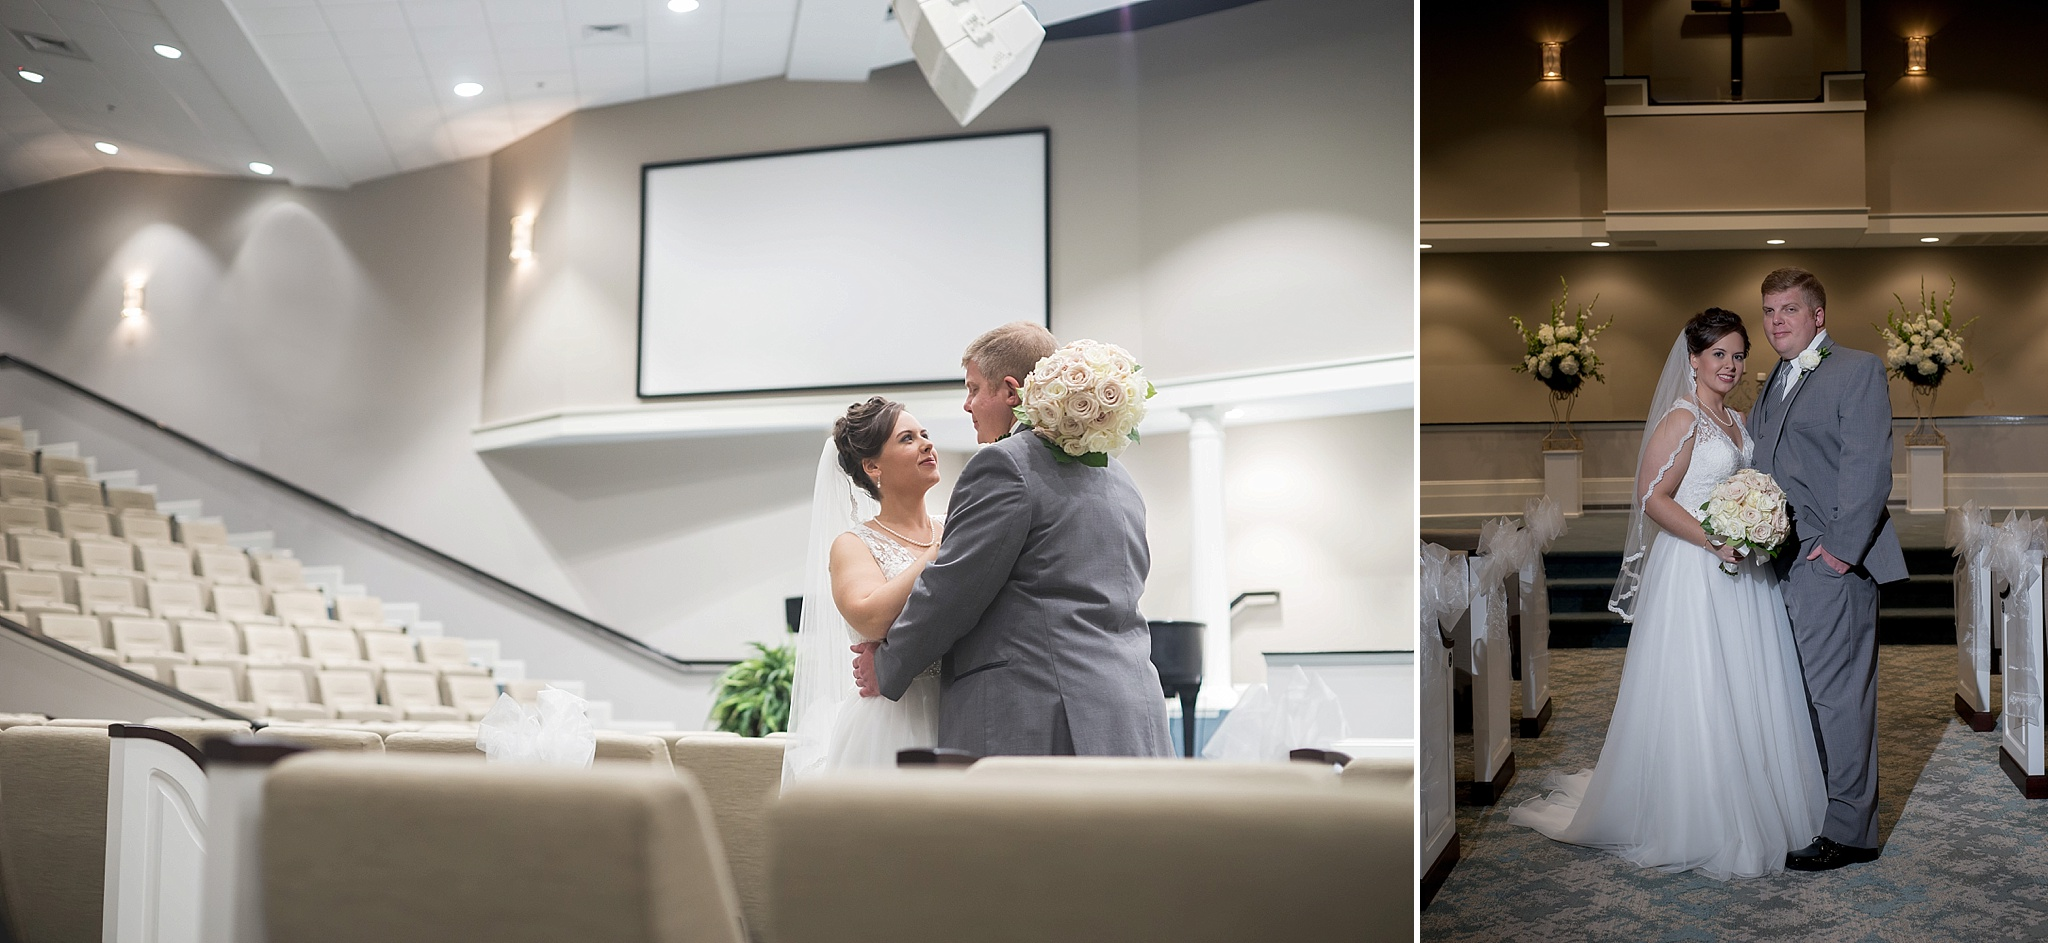 Maryanne & Chad - Wedding Preview - Greenville NC